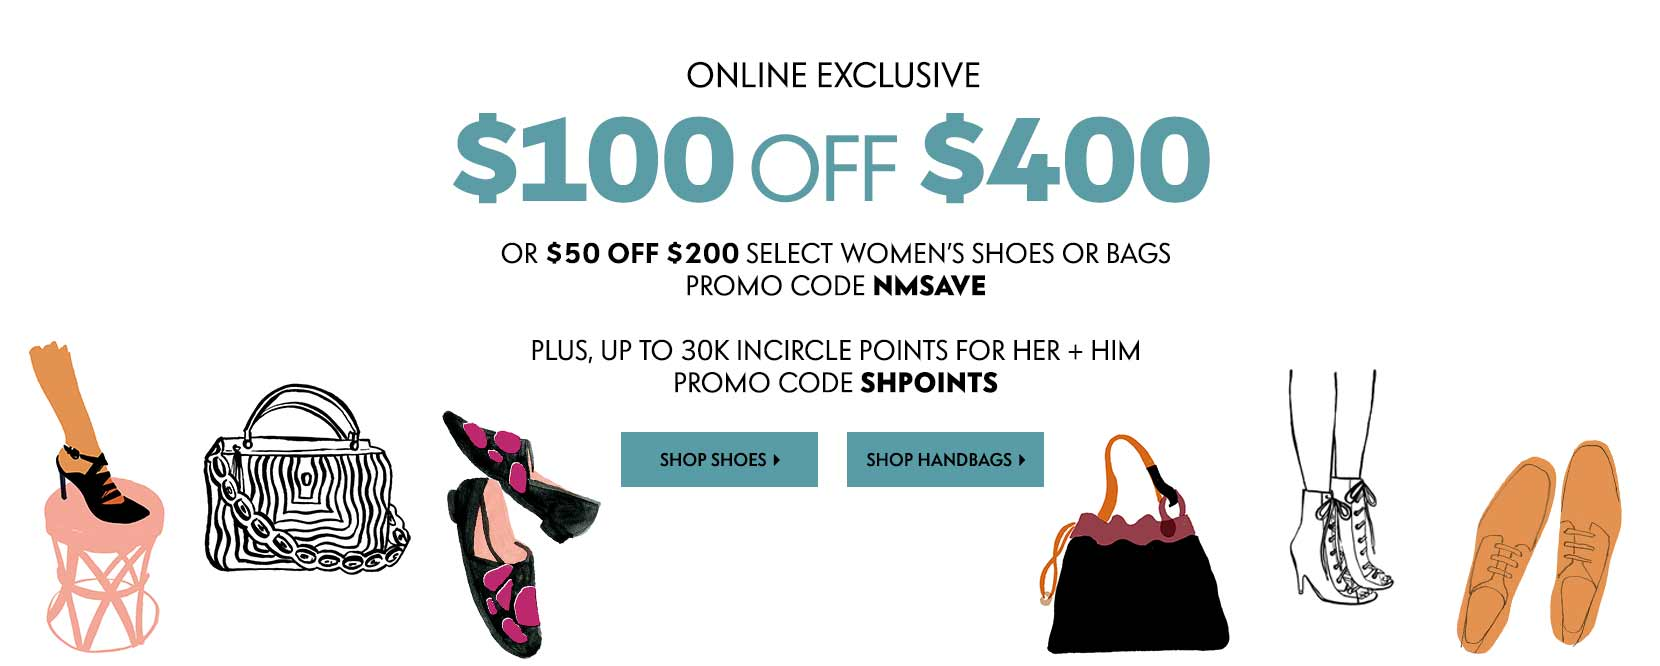 online exclusive $100 off $400 or $50 off $200 select women's shoes or bags promo code NMSAVE. Plus, up to 30K incircle points for her and him promo code SHPOINTS